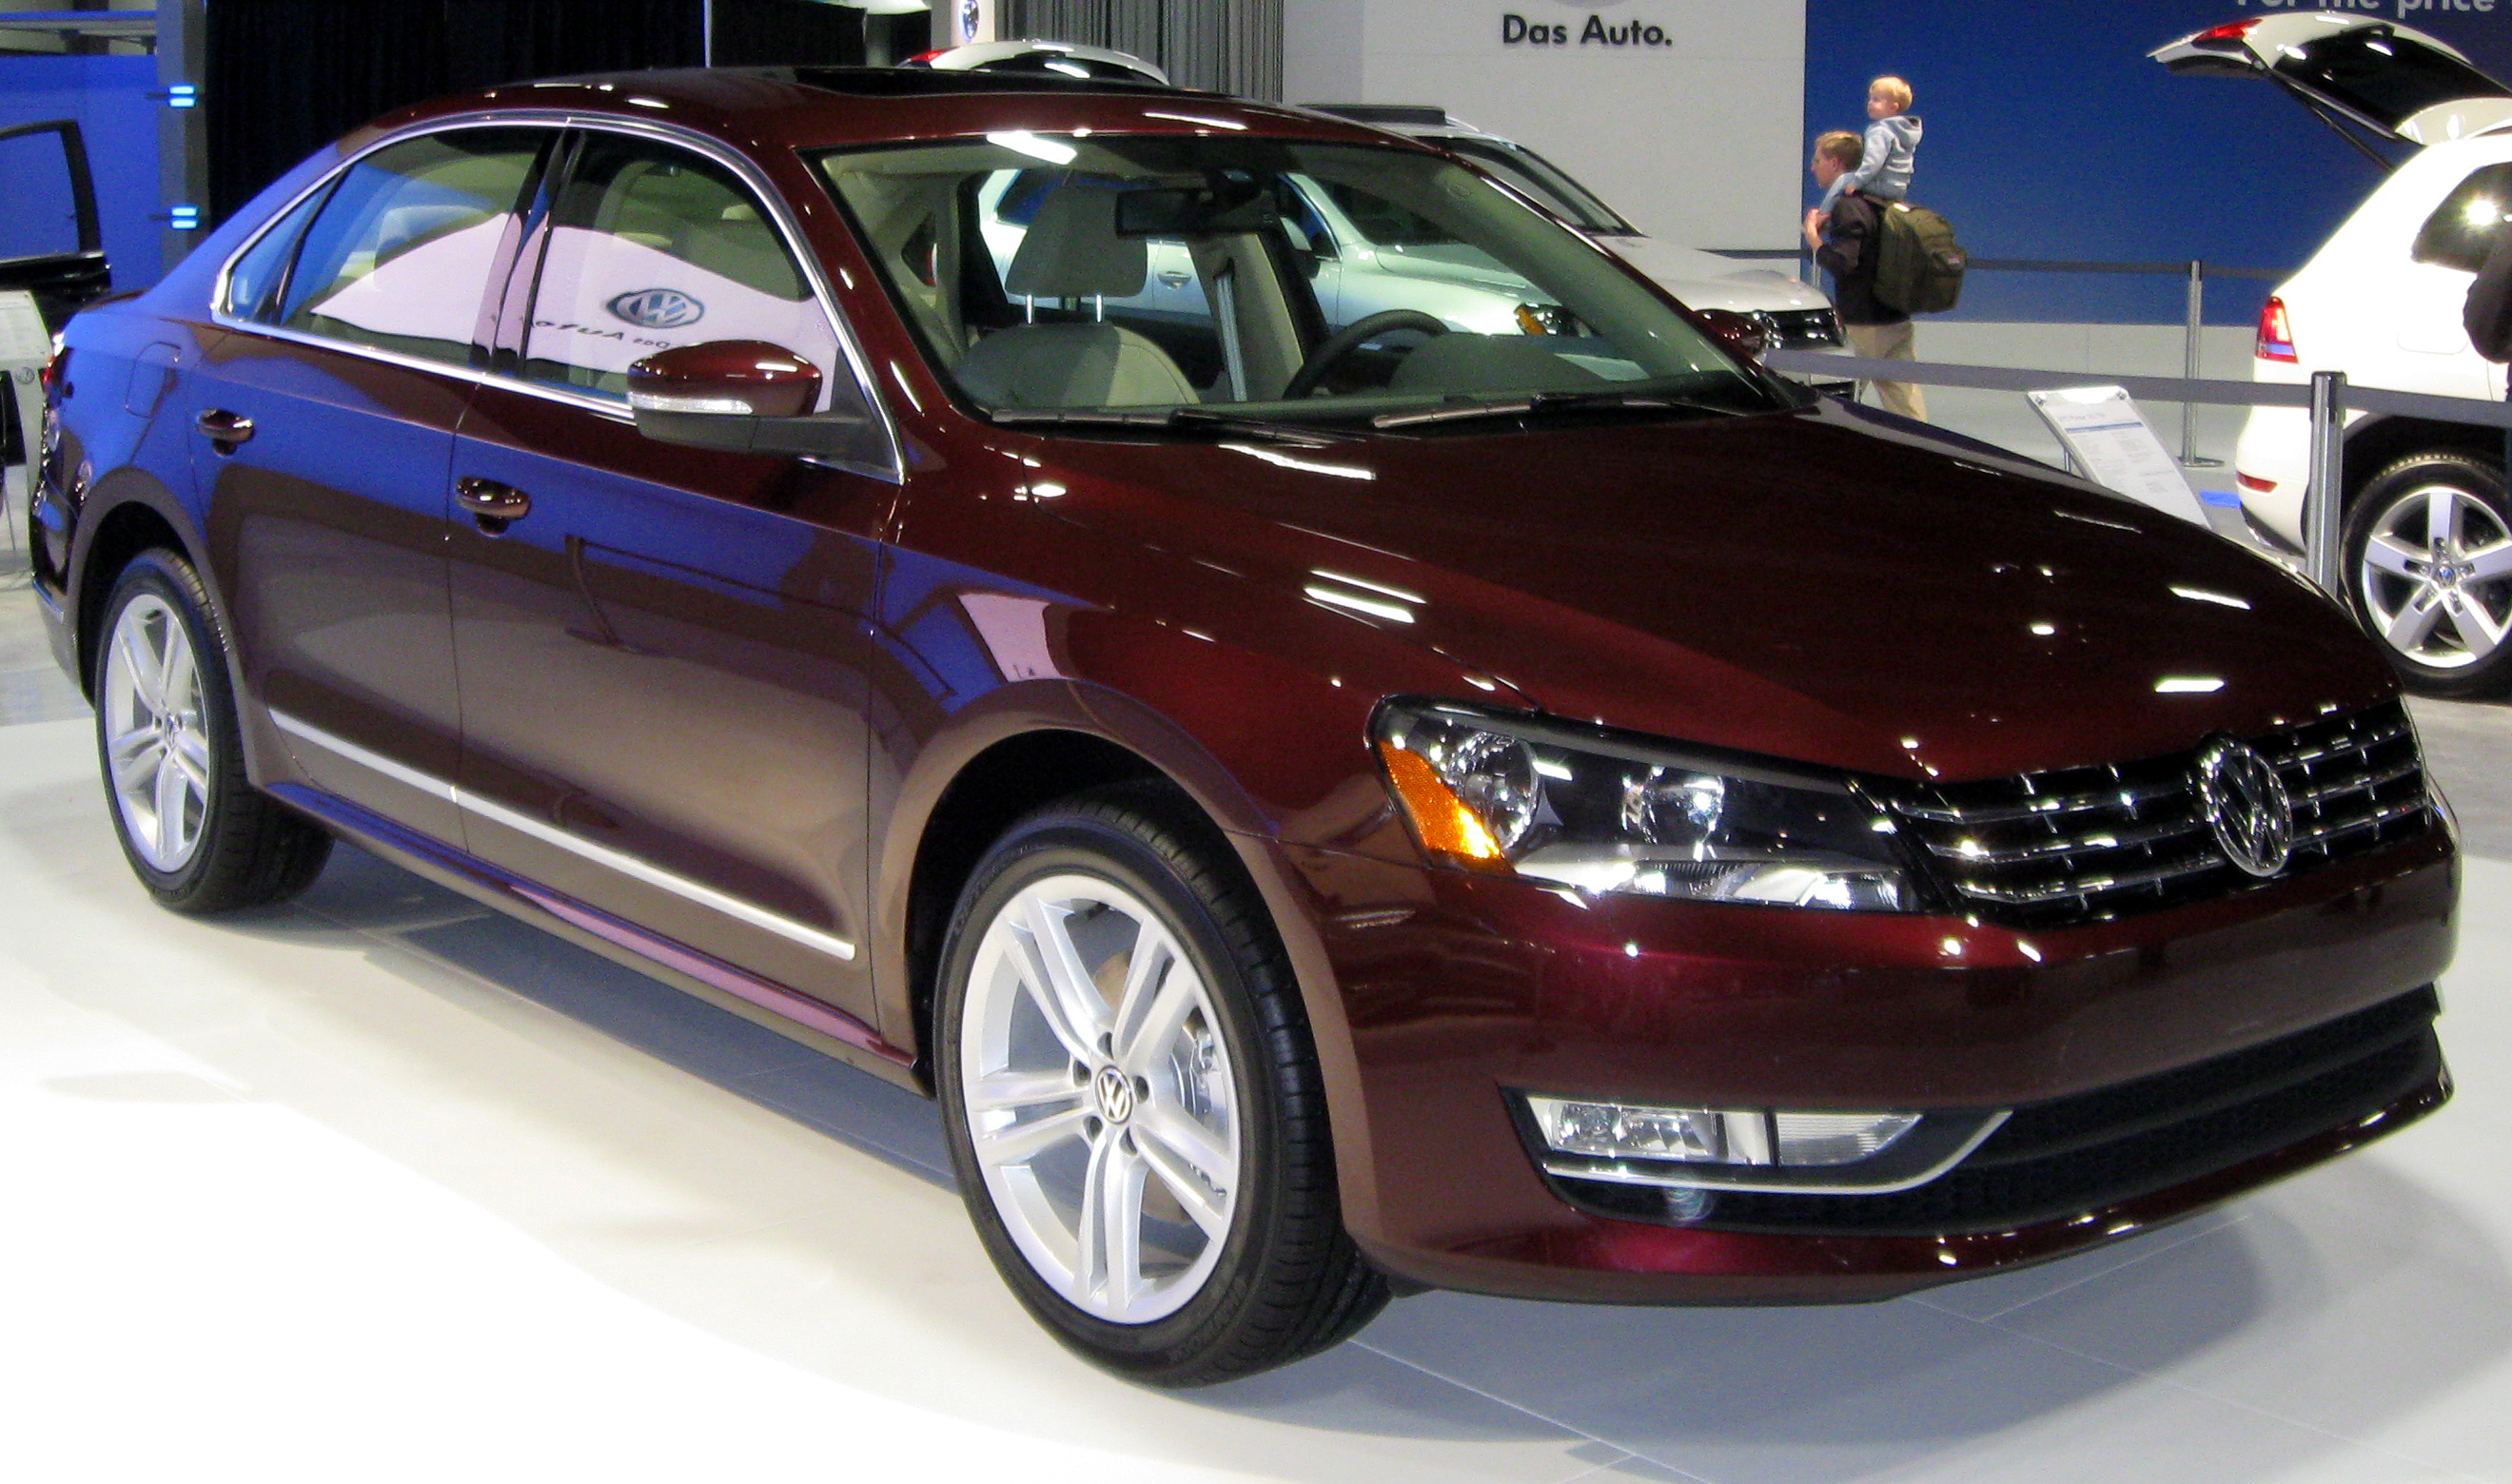 2012 volkswagen passat information and photos zombiedrive. Black Bedroom Furniture Sets. Home Design Ideas